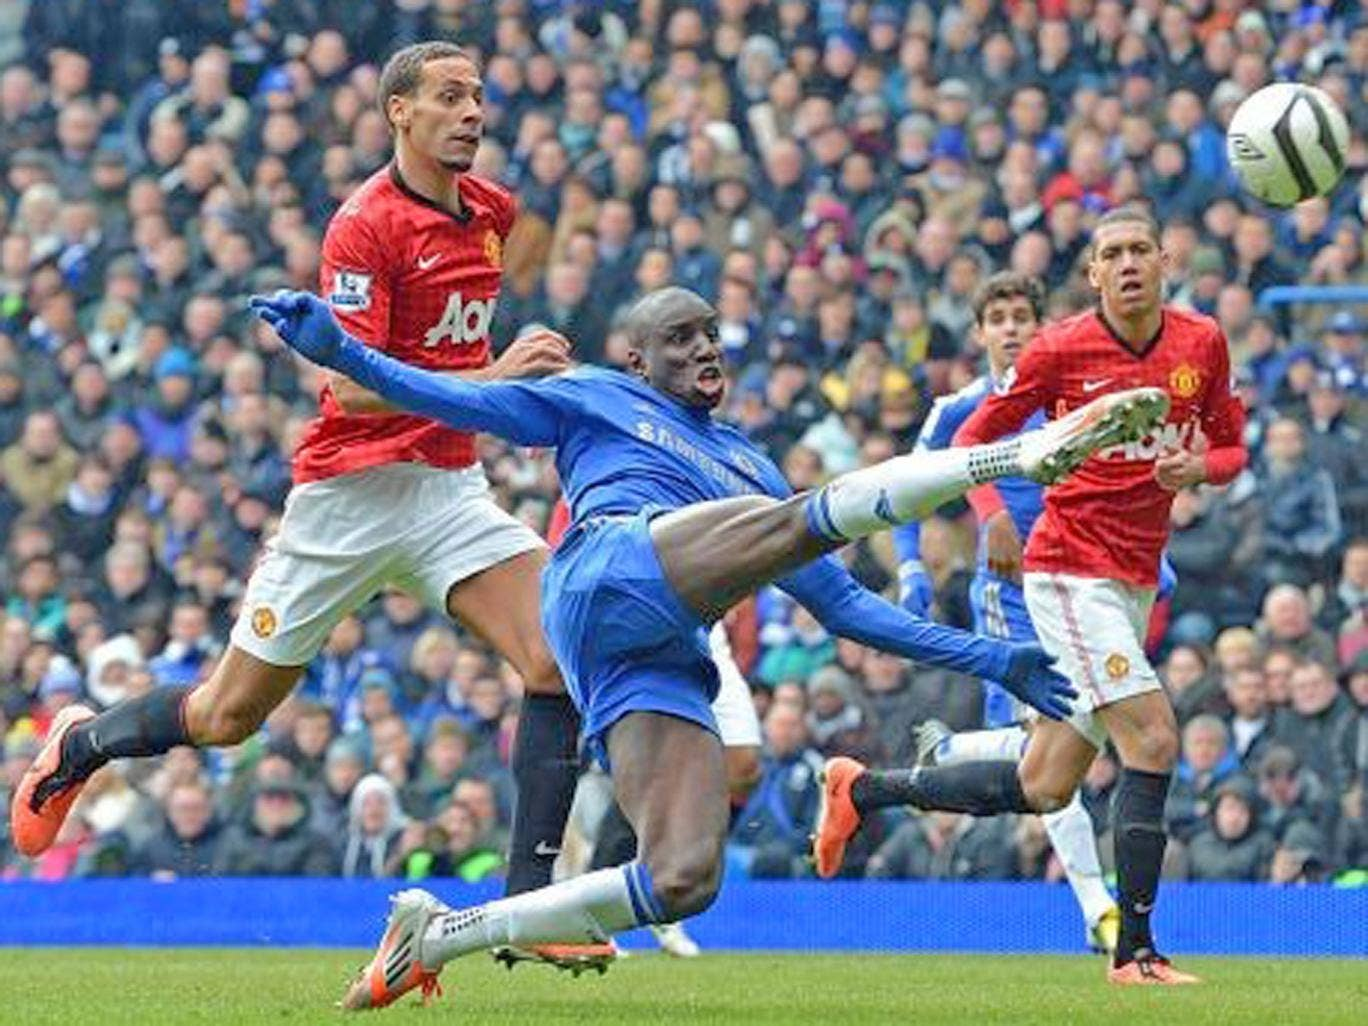 Chelsea's Demba Ba clinches his side's 1-0 FA Cup victory over United